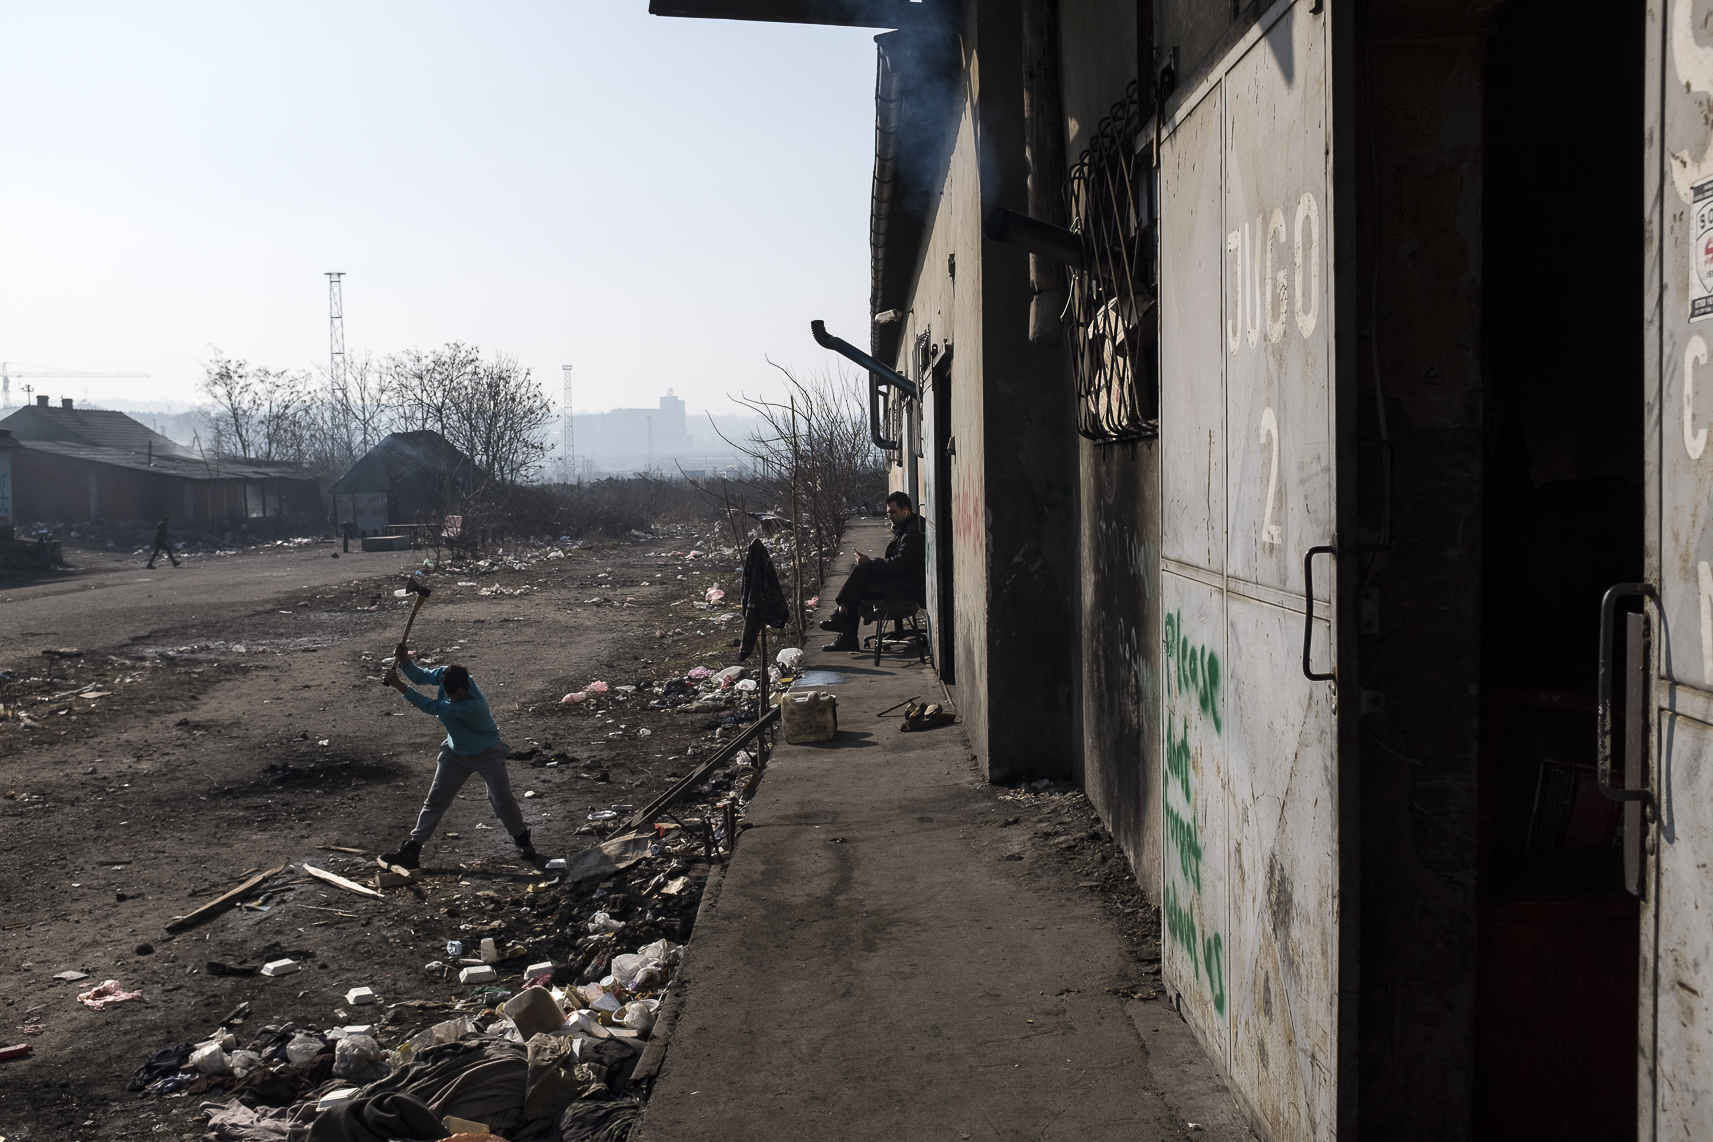 A migrants chops wood while another talks on the phone outside an abandoned warehouse where they took shelter in Belgrade, Serbia. February 15, 2107.